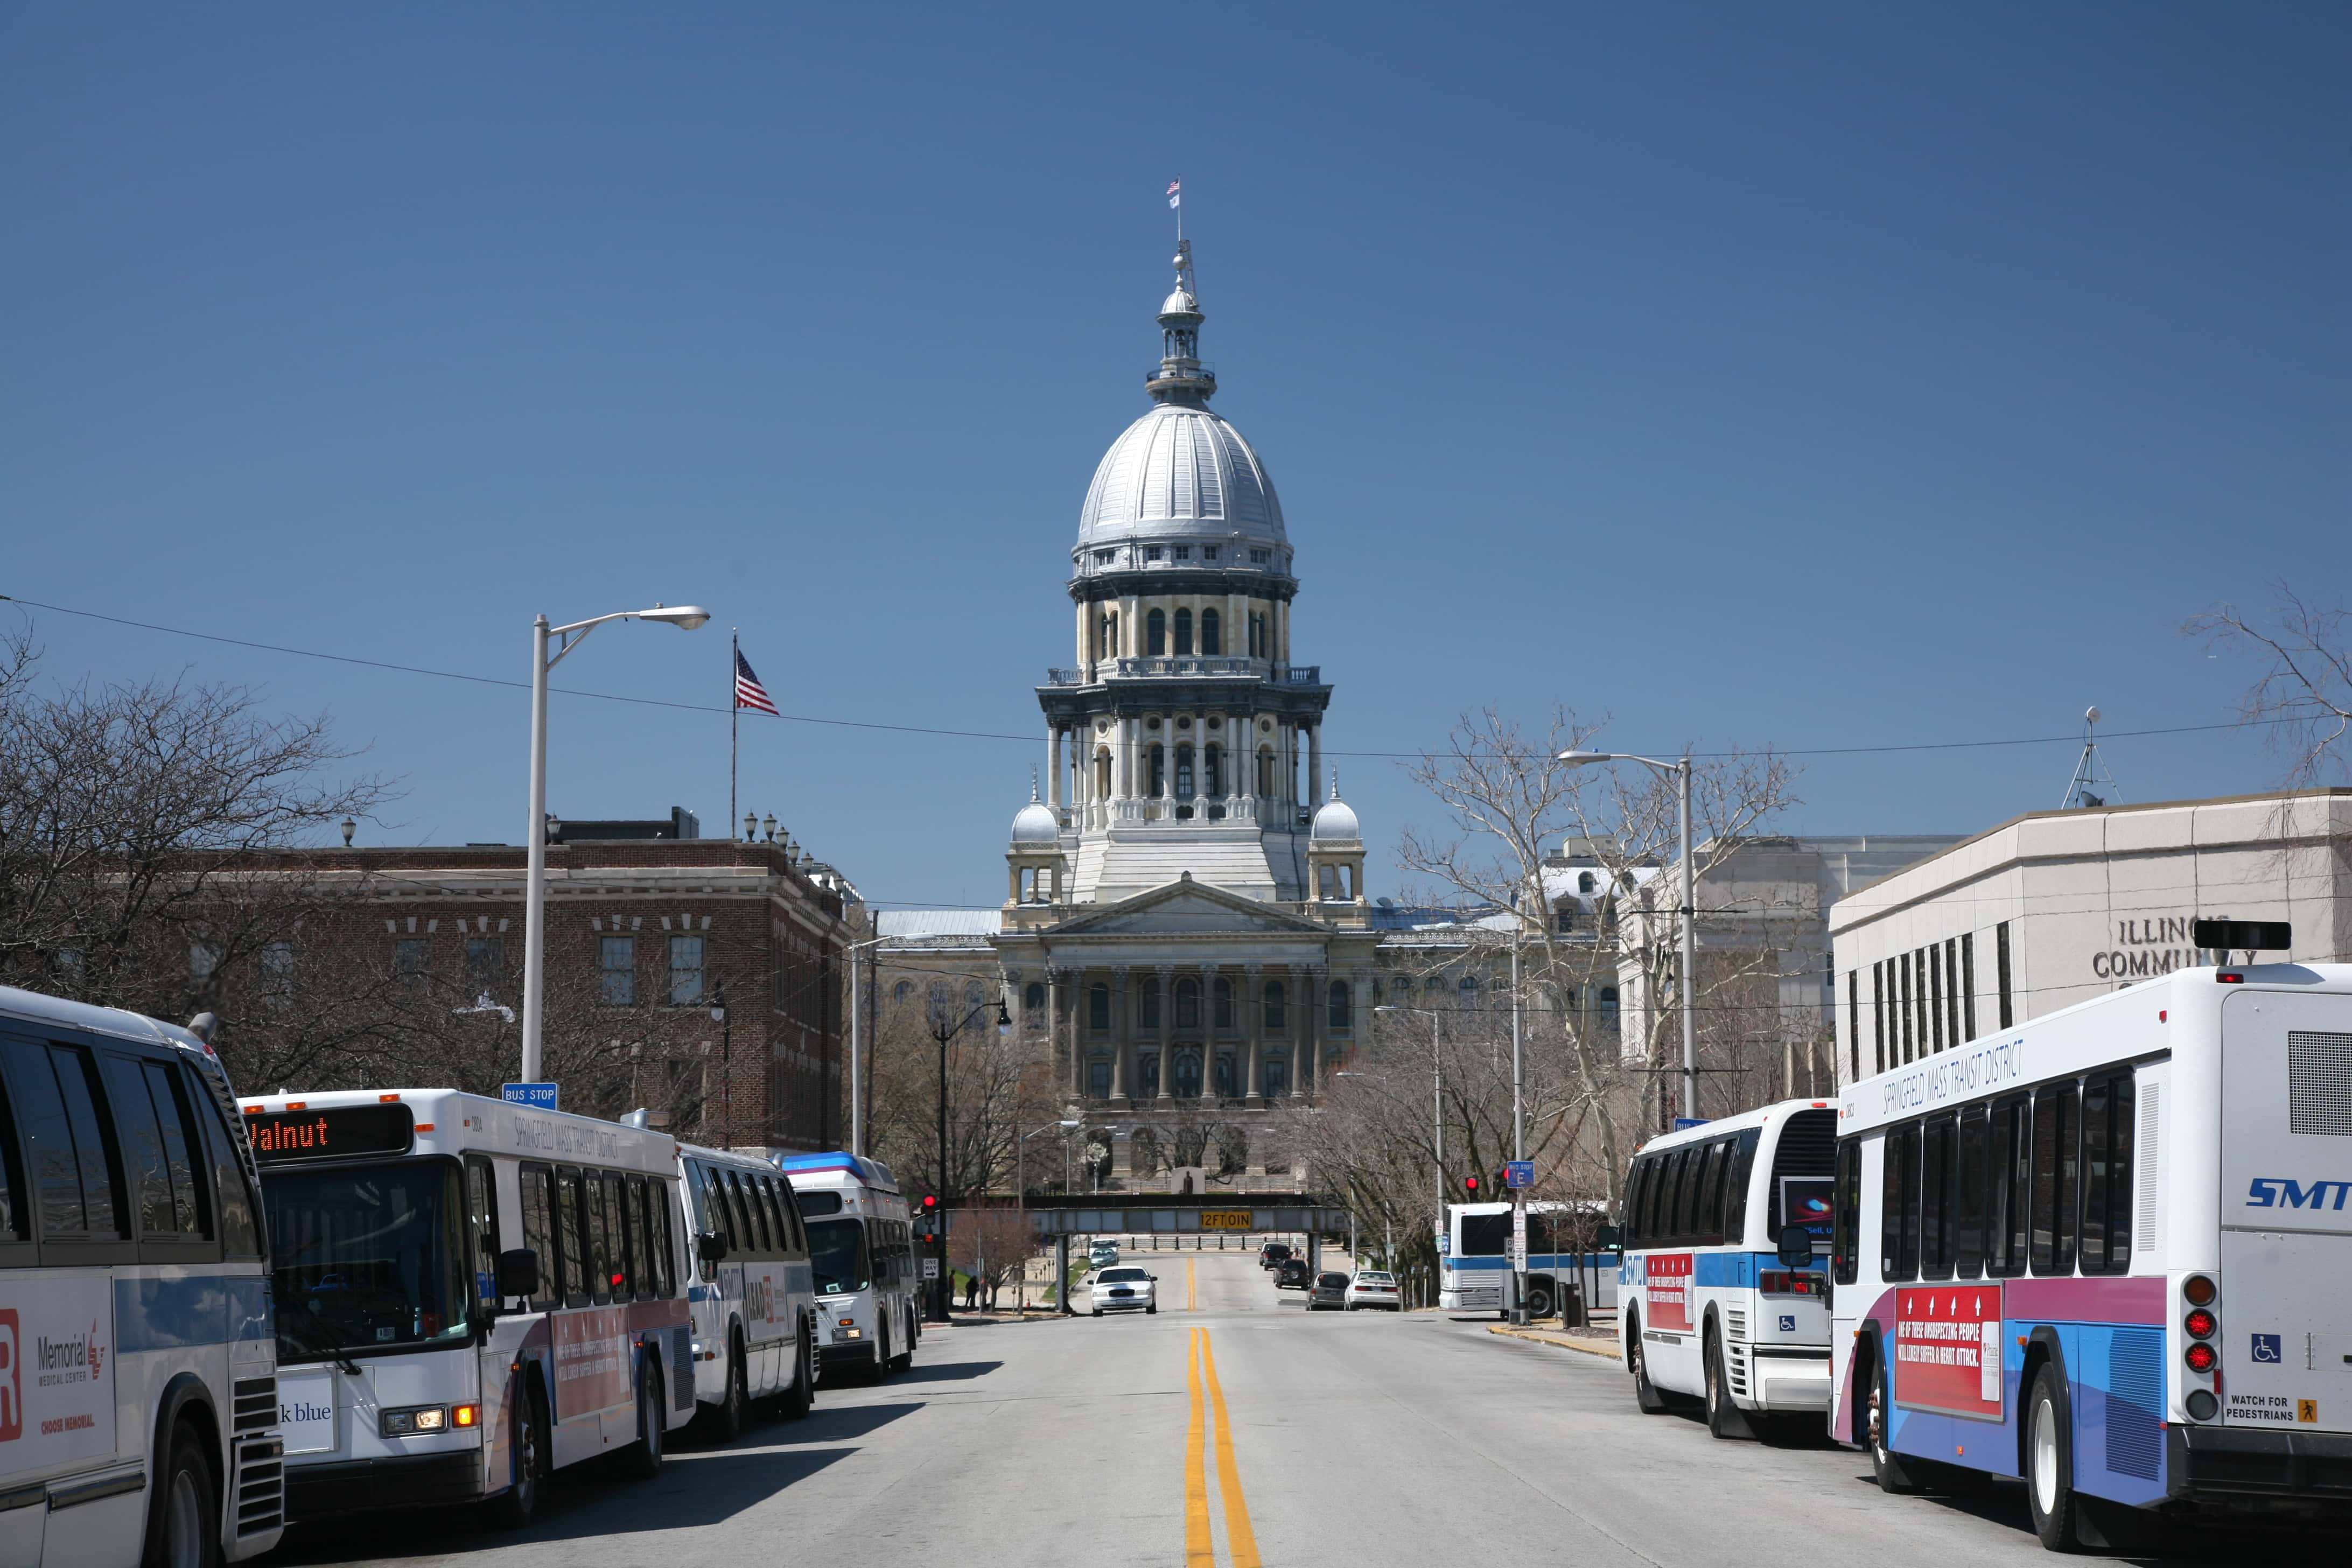 wpid-Illinois_State_Capitol_and_busses.jpg